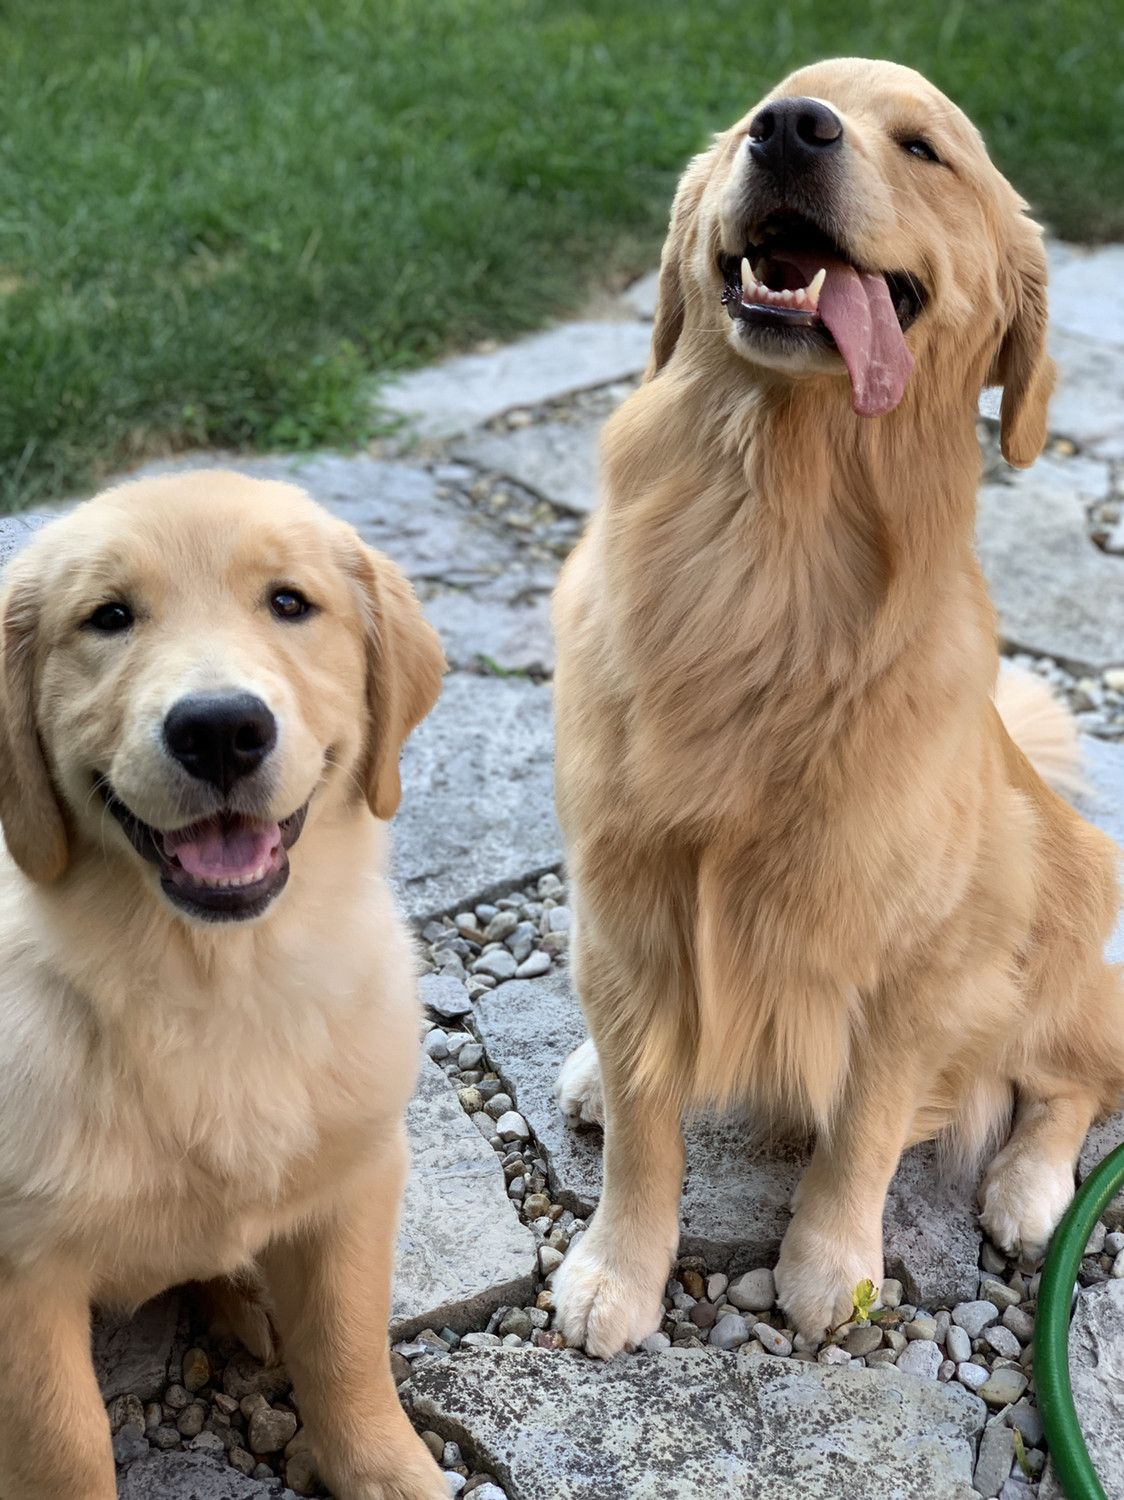 Best Friends Dogs Cute Dogs And Puppies Golden Retriever